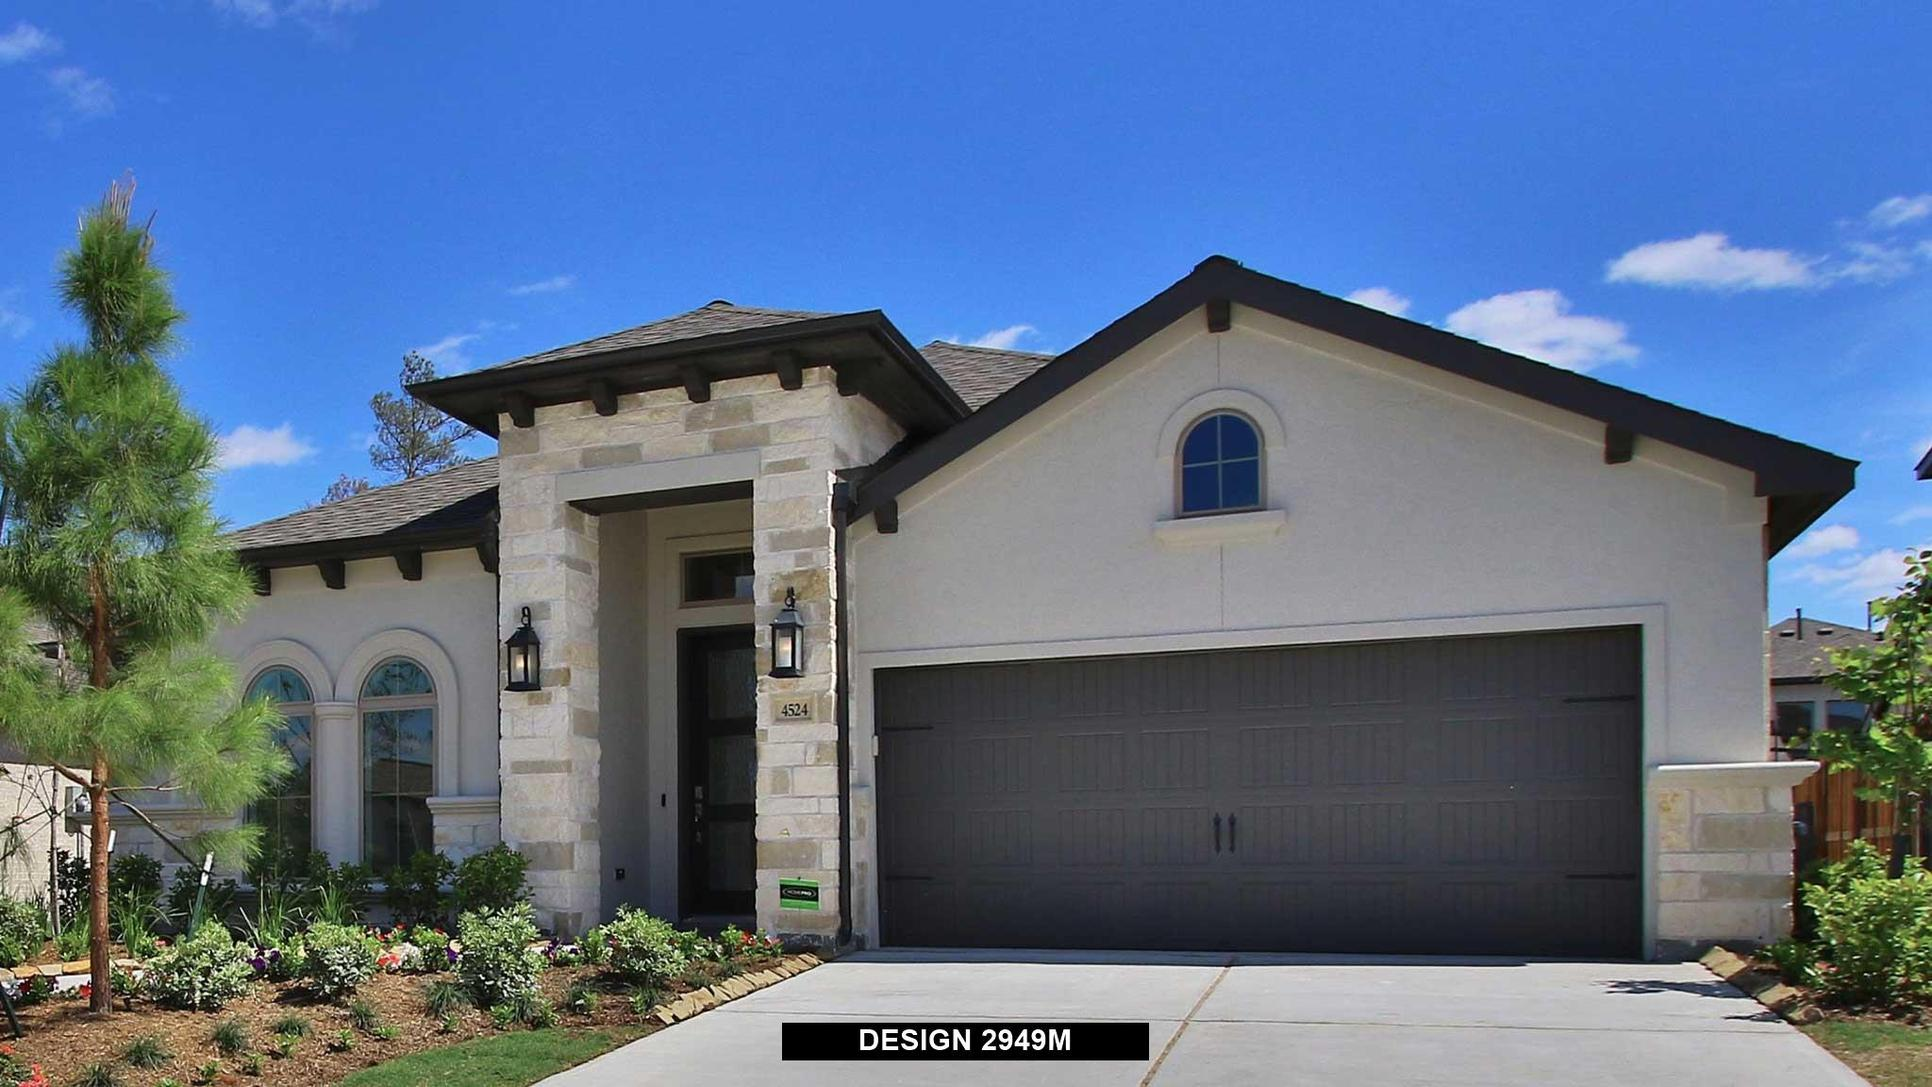 Plan 2949M:Representative photo.  Features and specifications may vary by community.